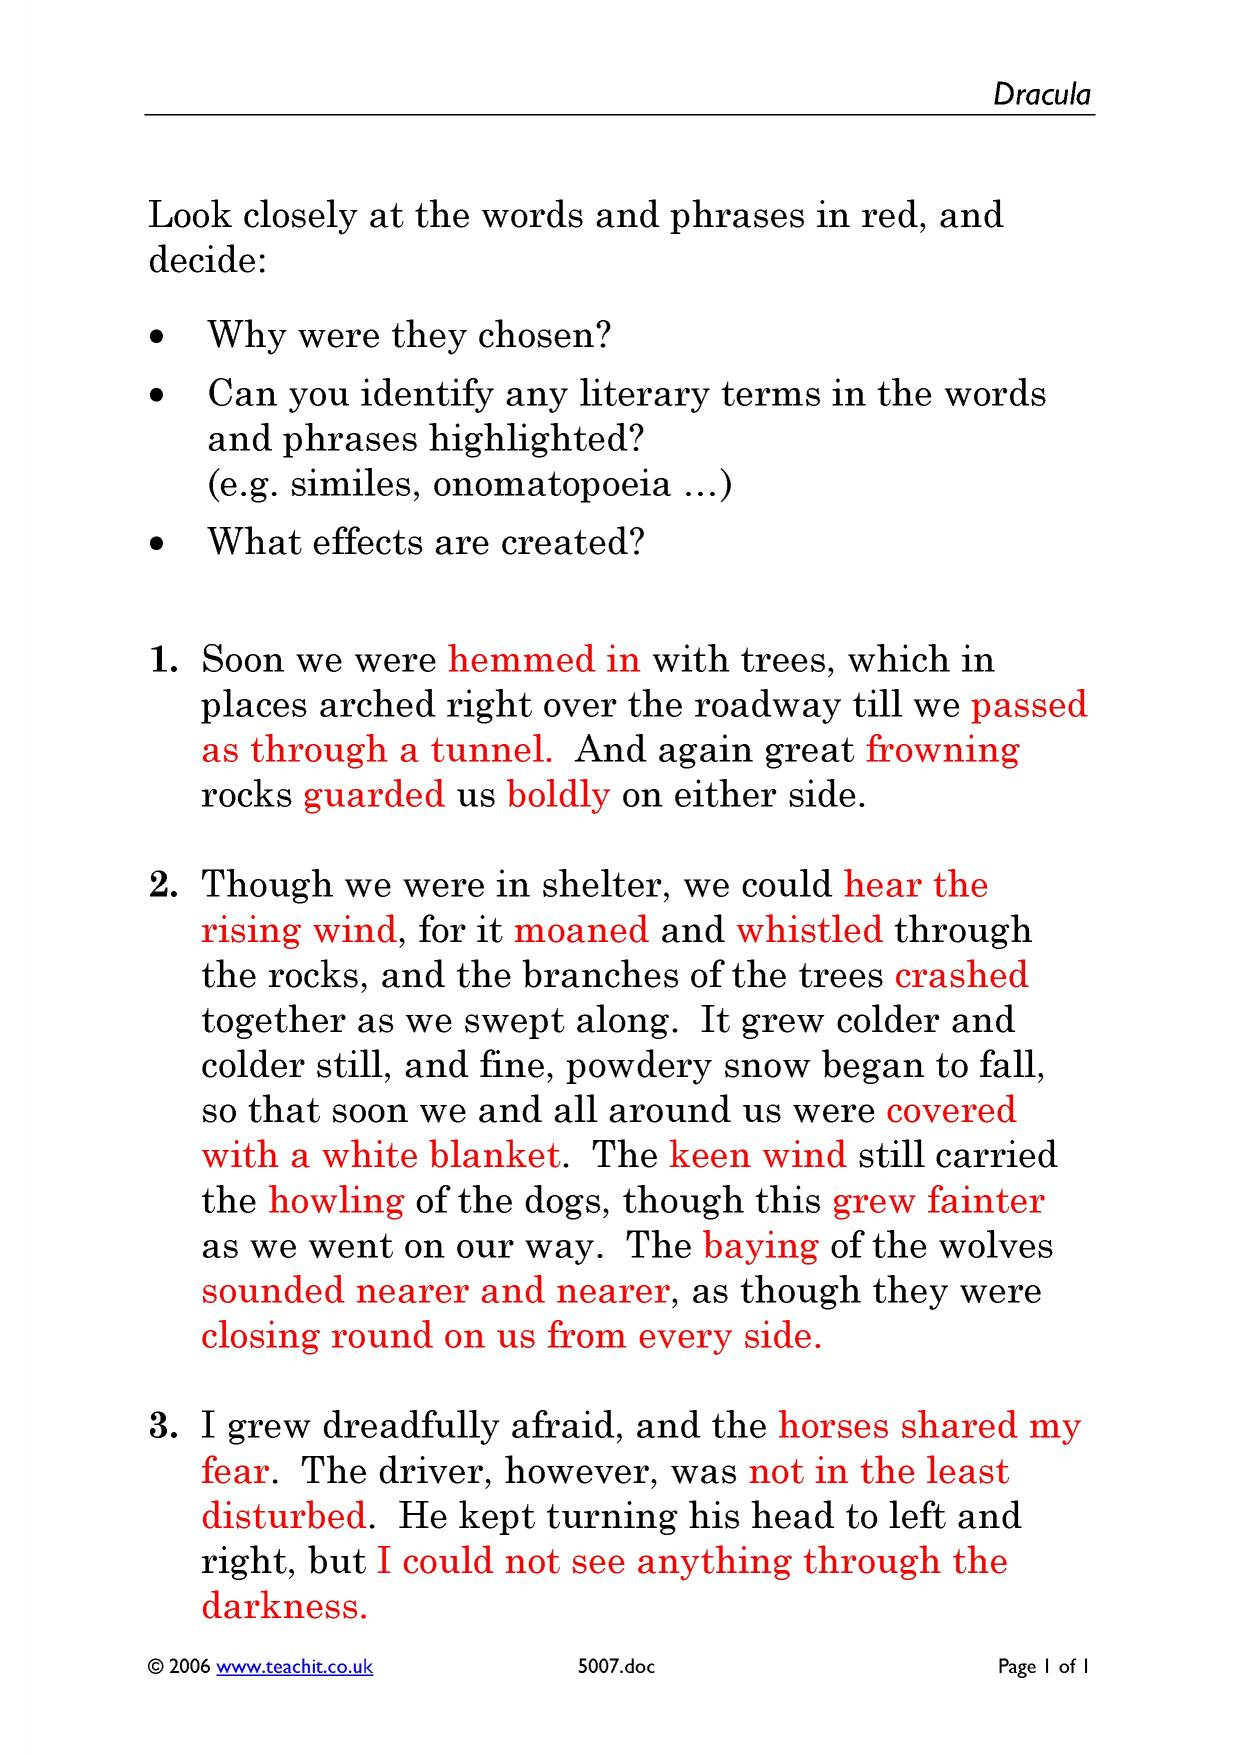 dracula by bram stoker ks4 prose key stage 4 resources 2 preview